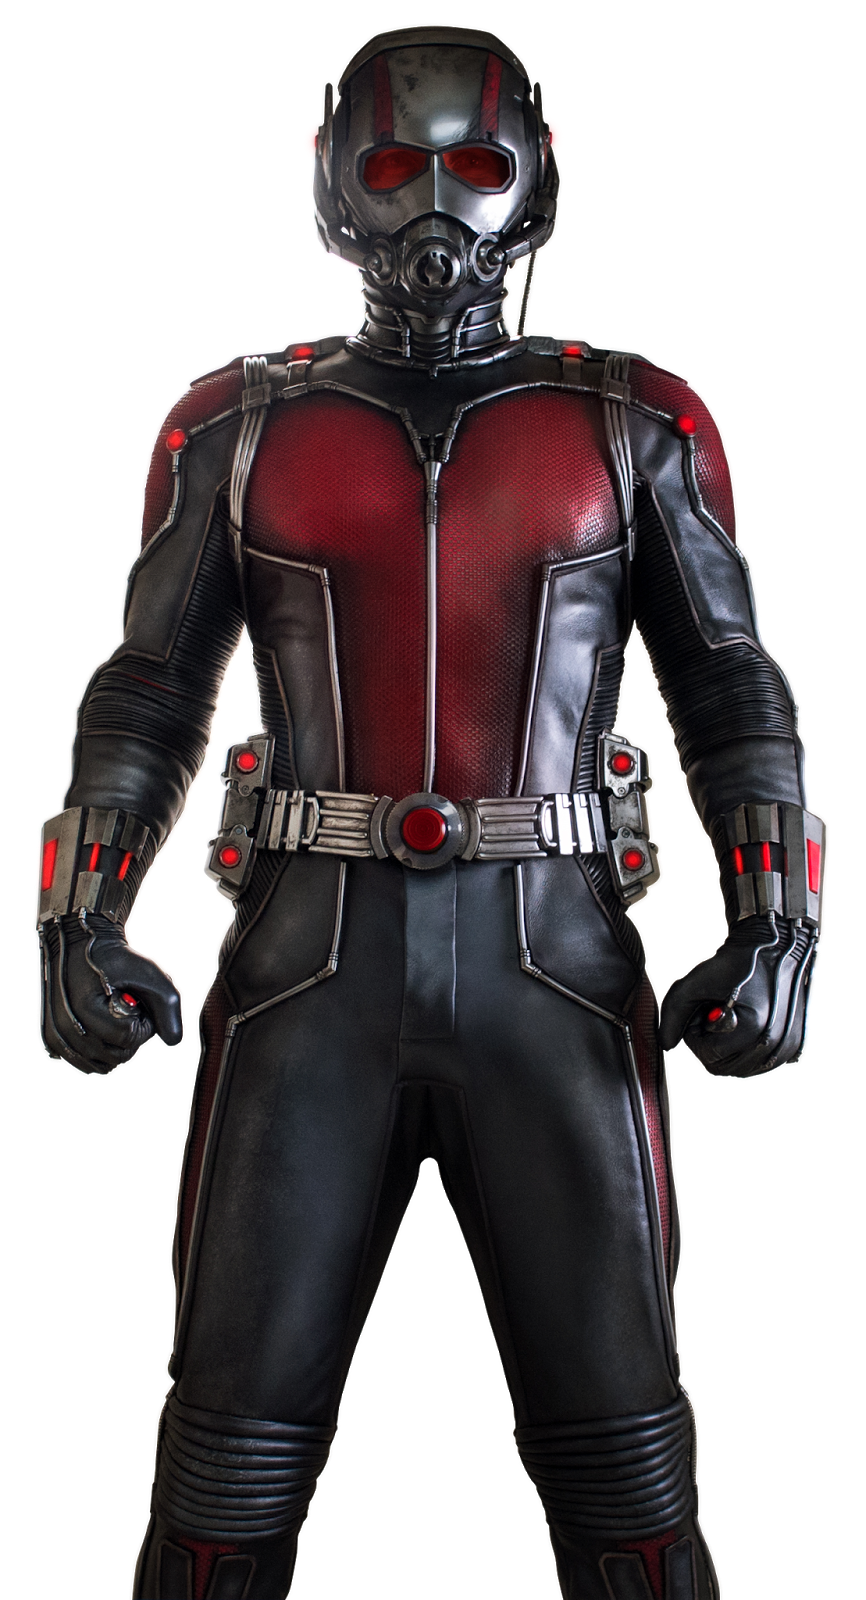 ant man - photo #11